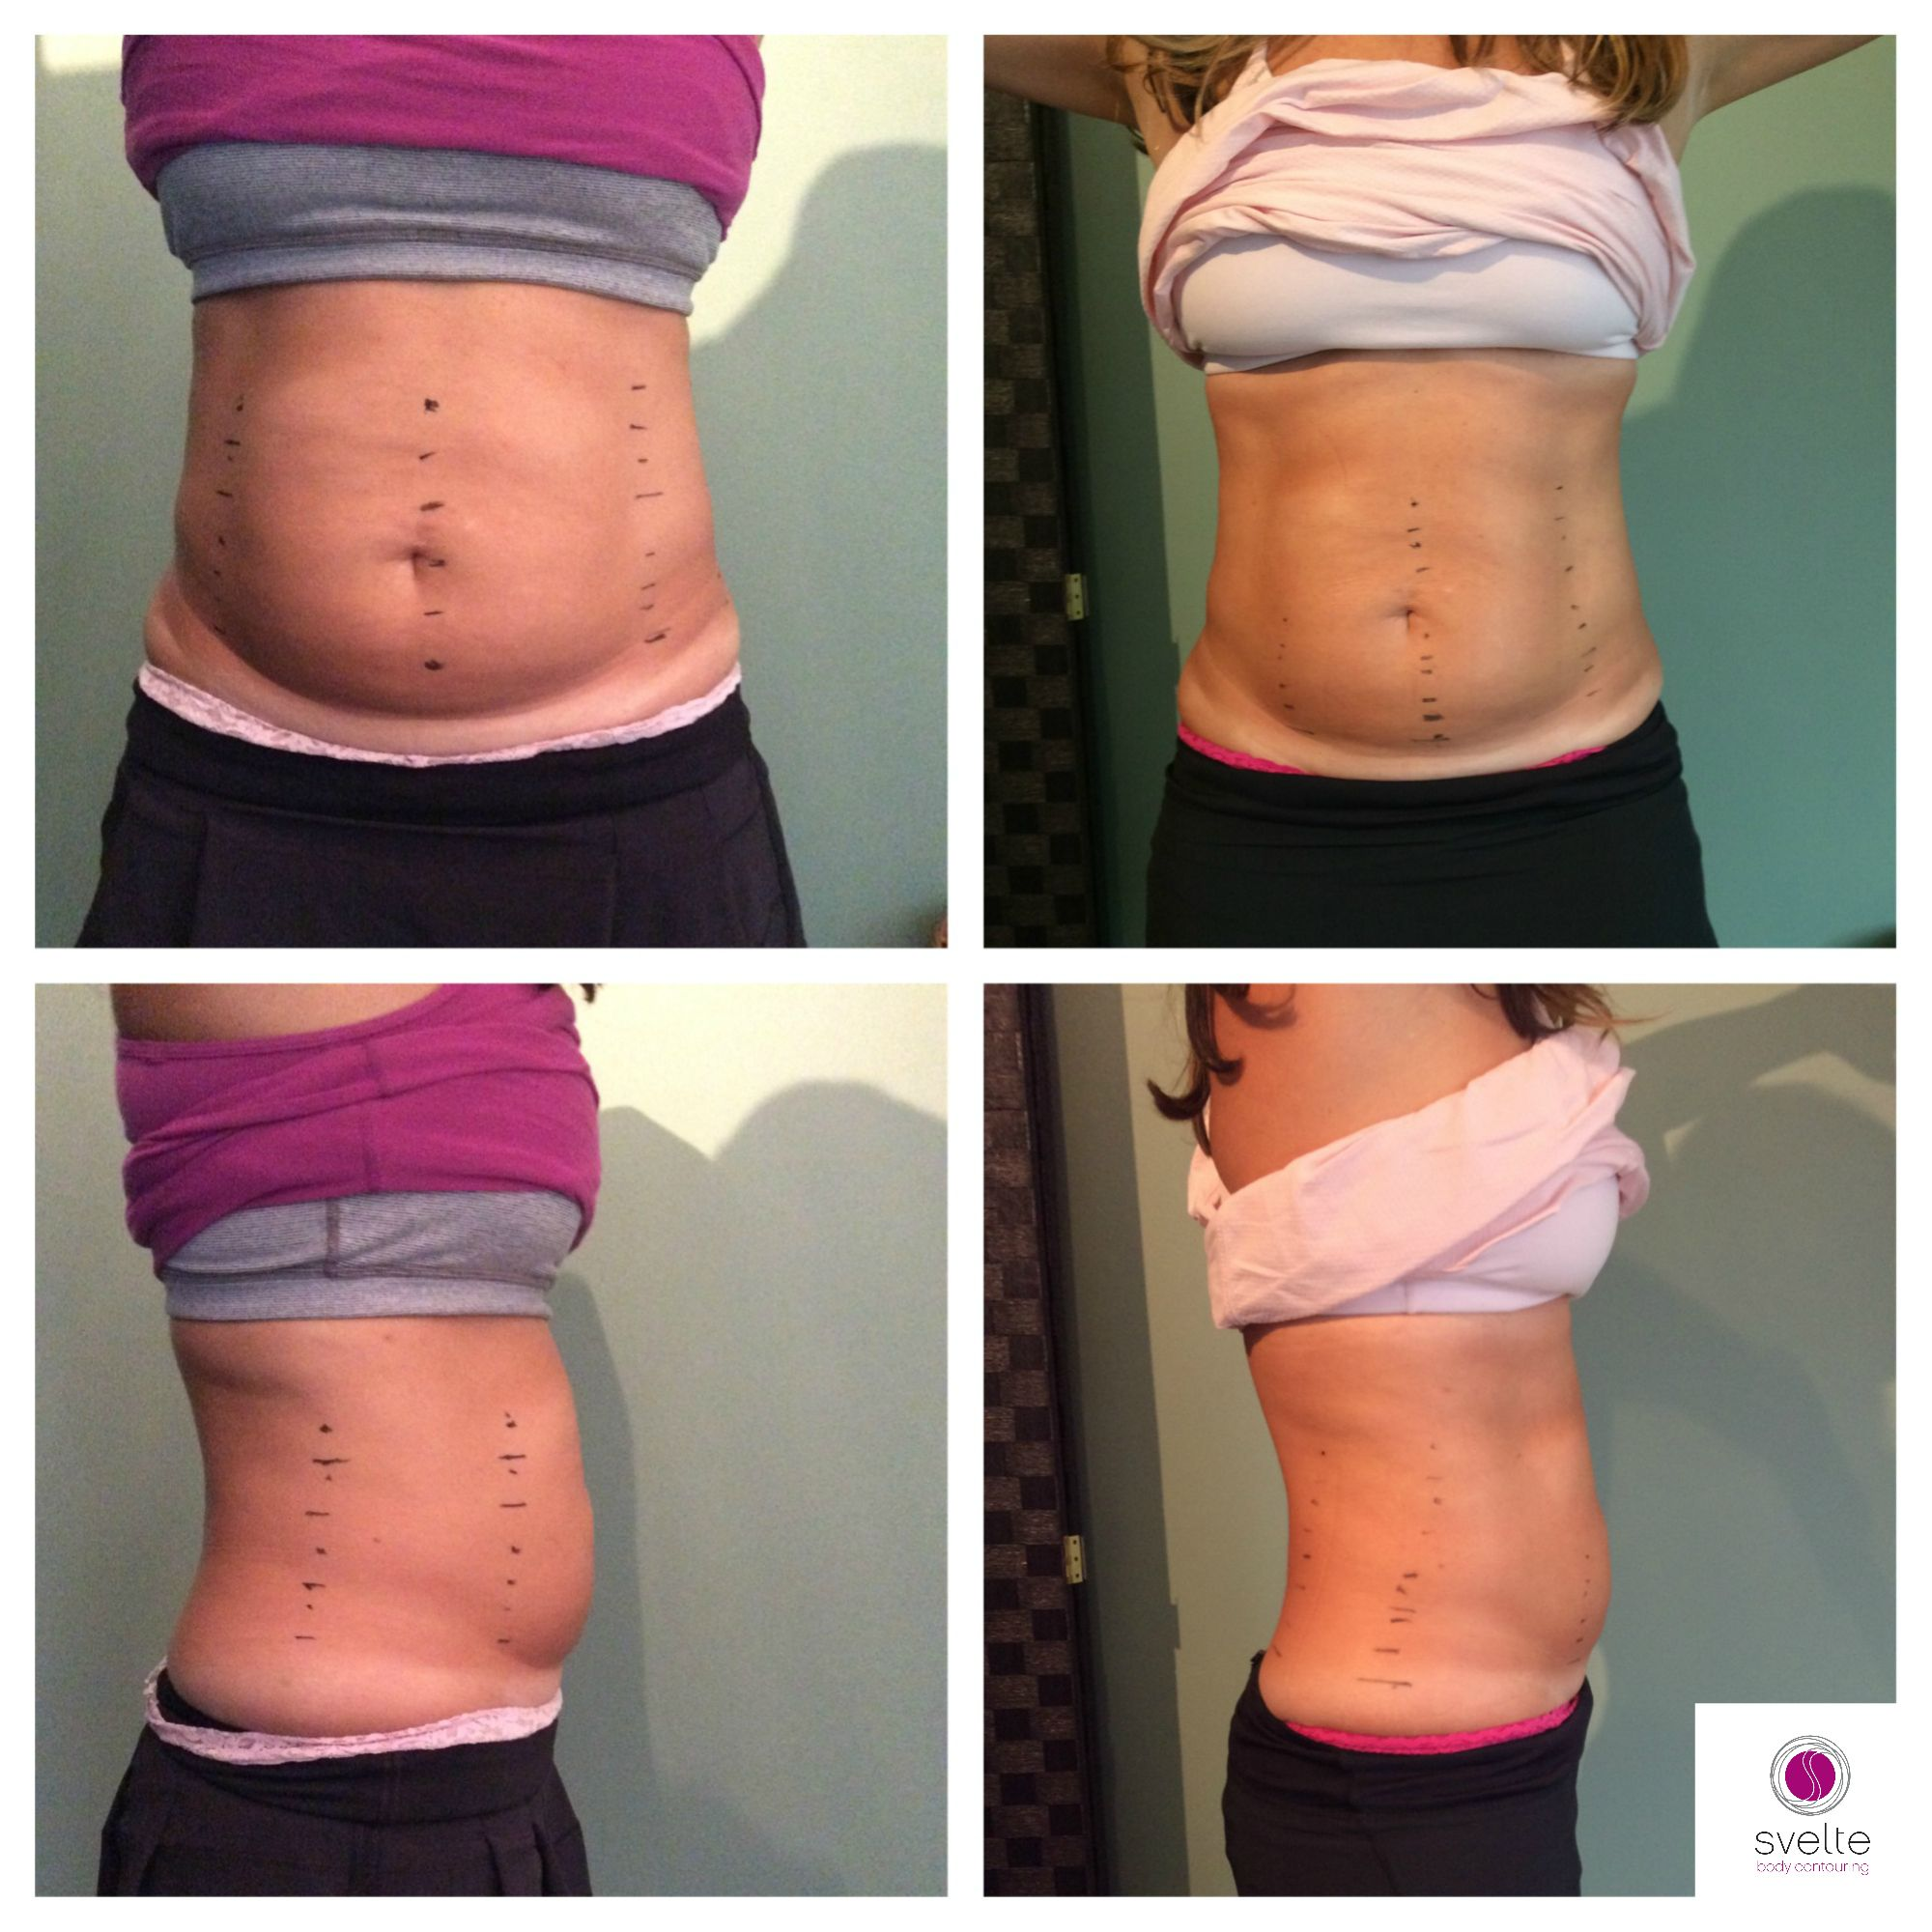 Actual client before and after 4 Svelte Body Contouring